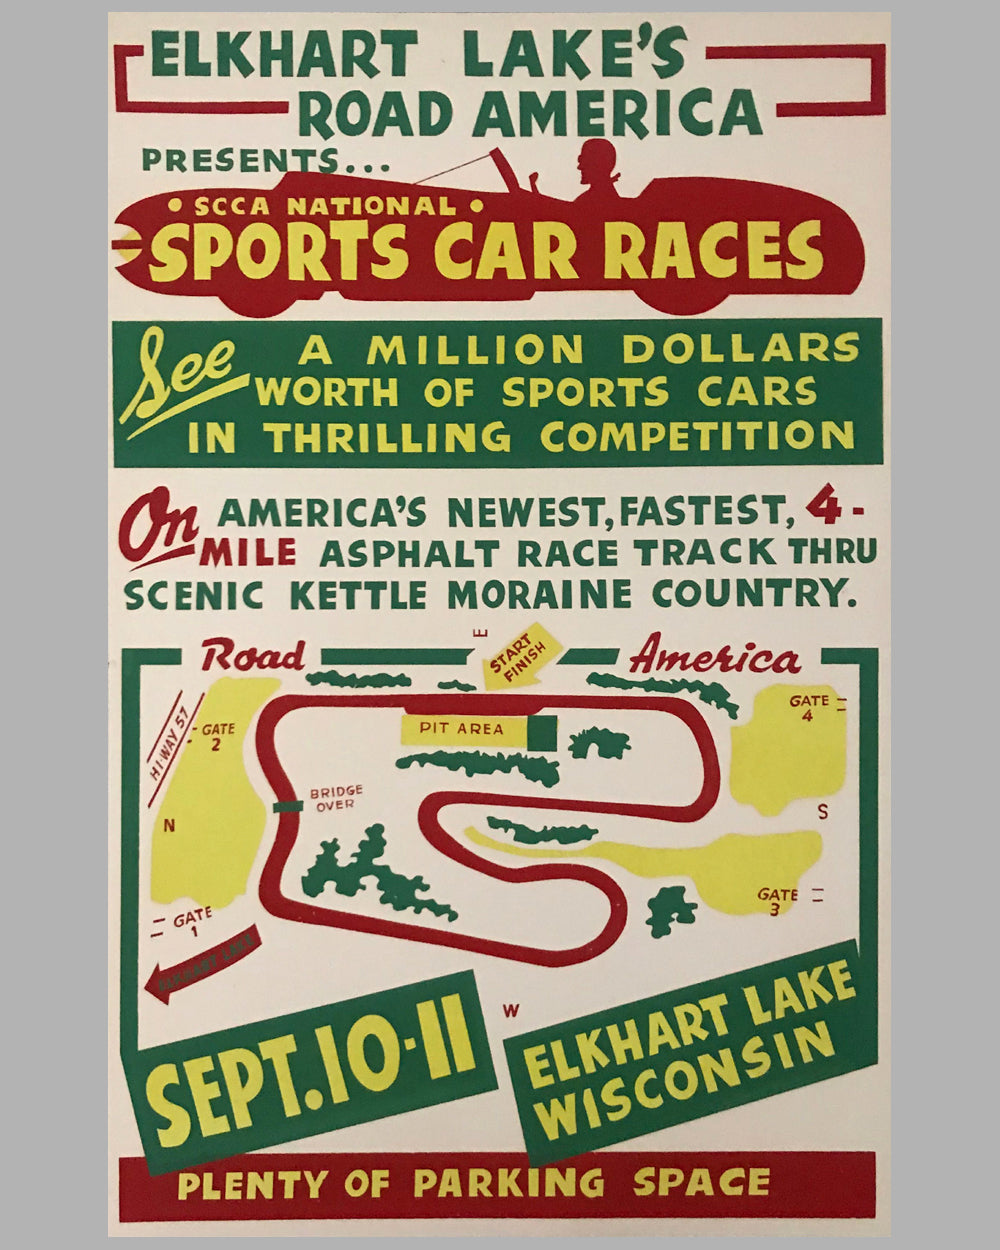 Elkhart Lake 1955 original poster